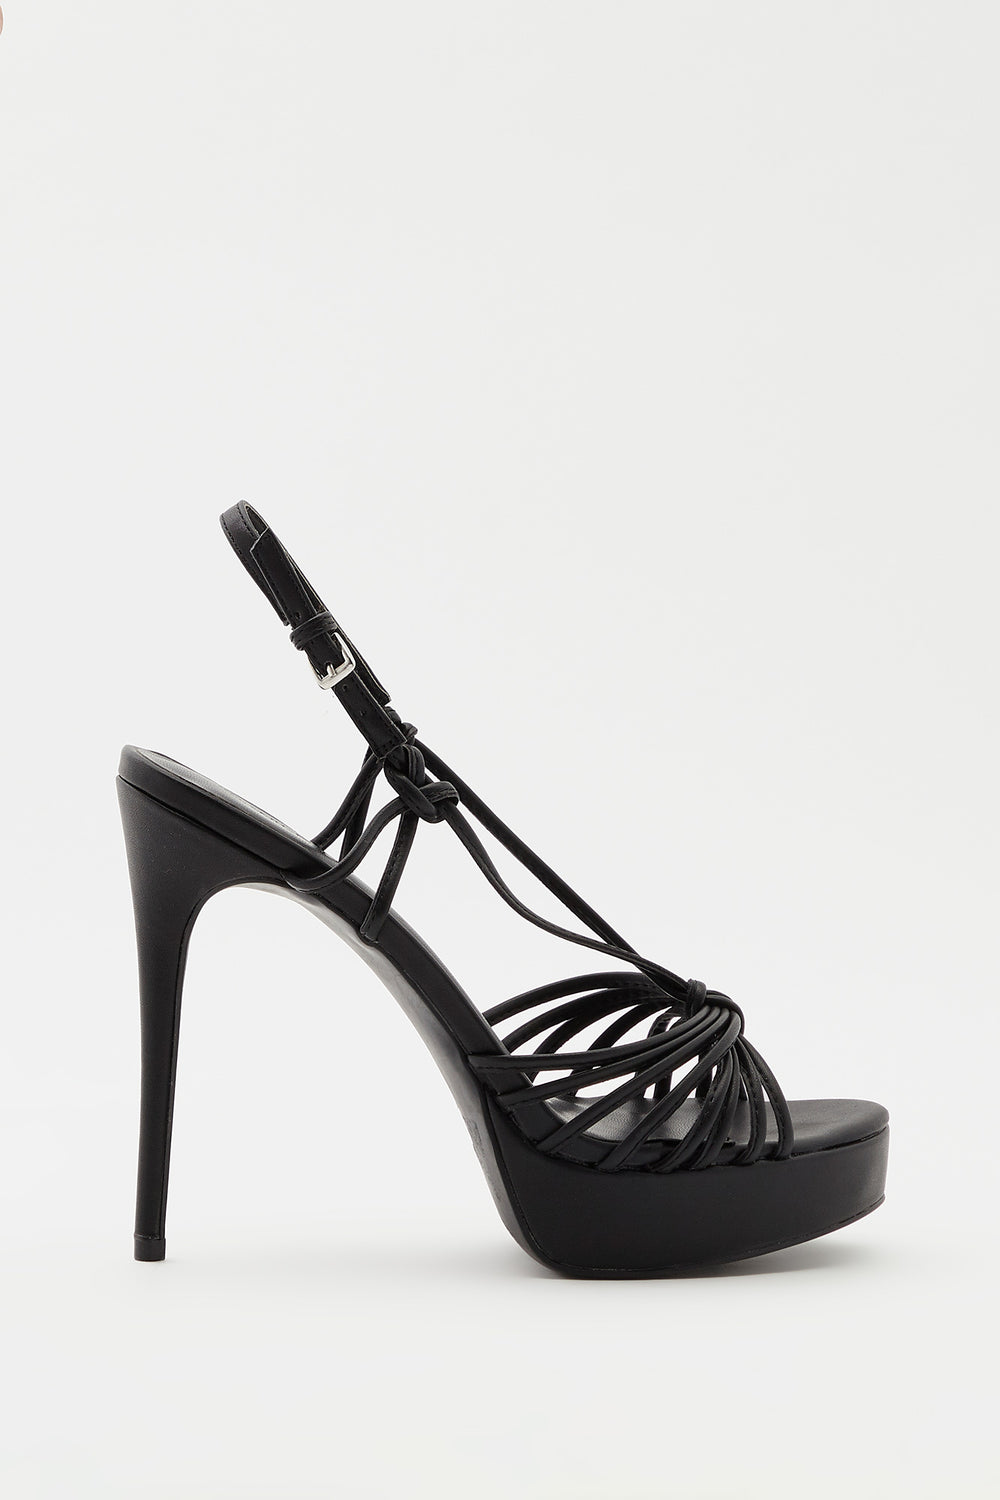 Strappy Platform Stiletto Sandal Black